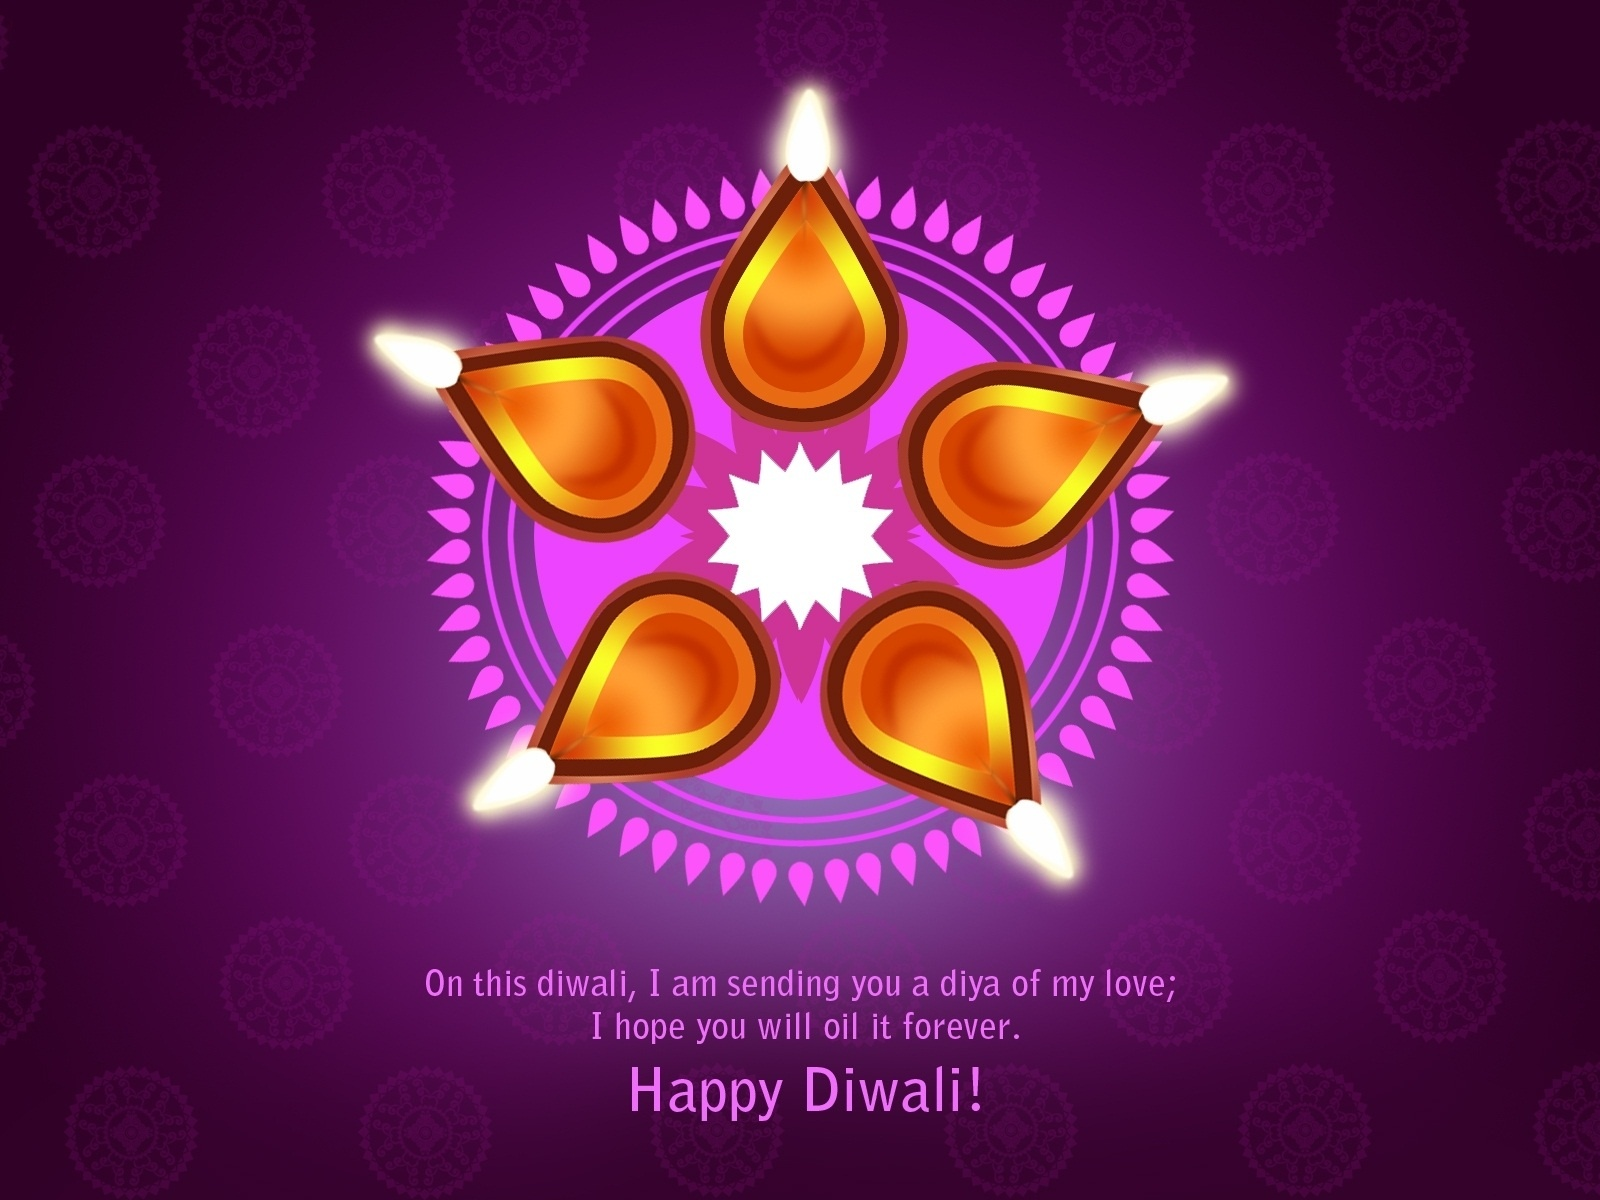 100 happy diwali images brightest and most beautiful image 100 happy diwali images brightest and most beautiful image collection m4hsunfo